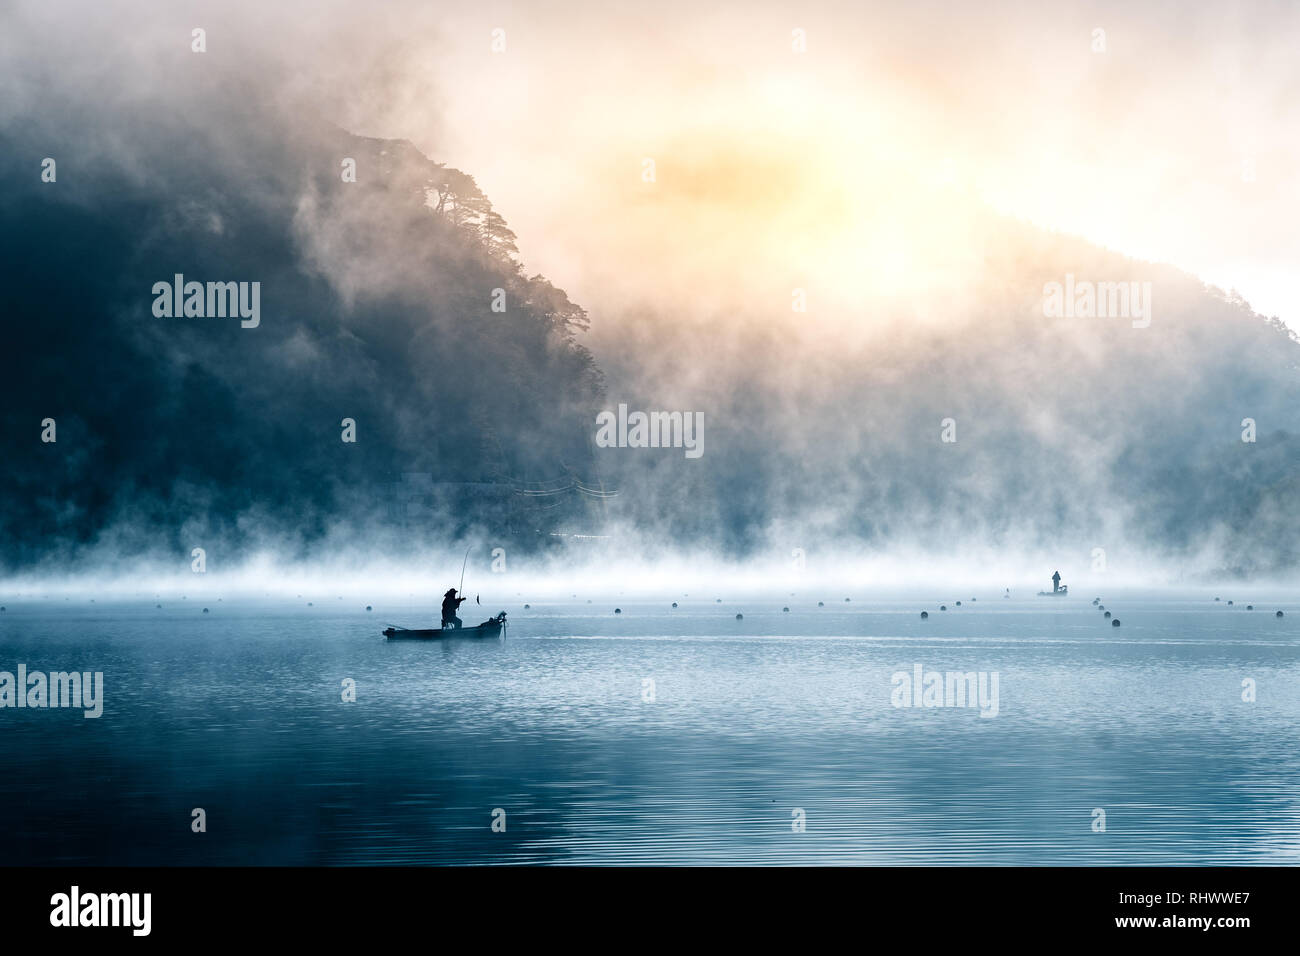 the silhouette of a fisher man with his boat on a misty moring at Lake Shoji - Stock Image